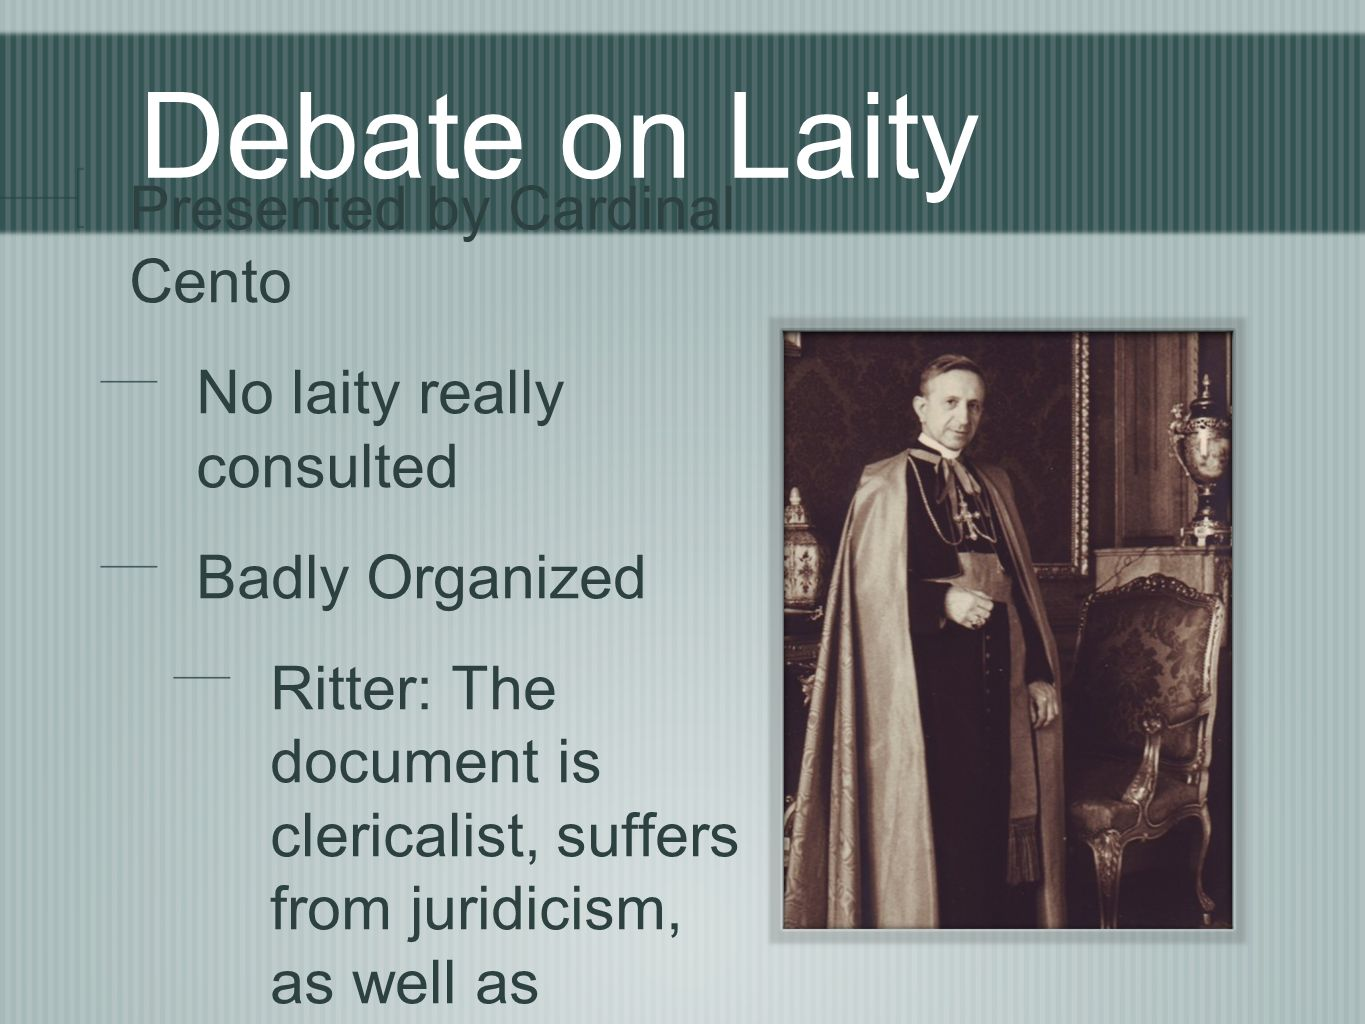 Debate on Laity Presented by Cardinal Cento No laity really consulted Badly Organized Ritter: The document is clericalist, suffers from juridicism, as